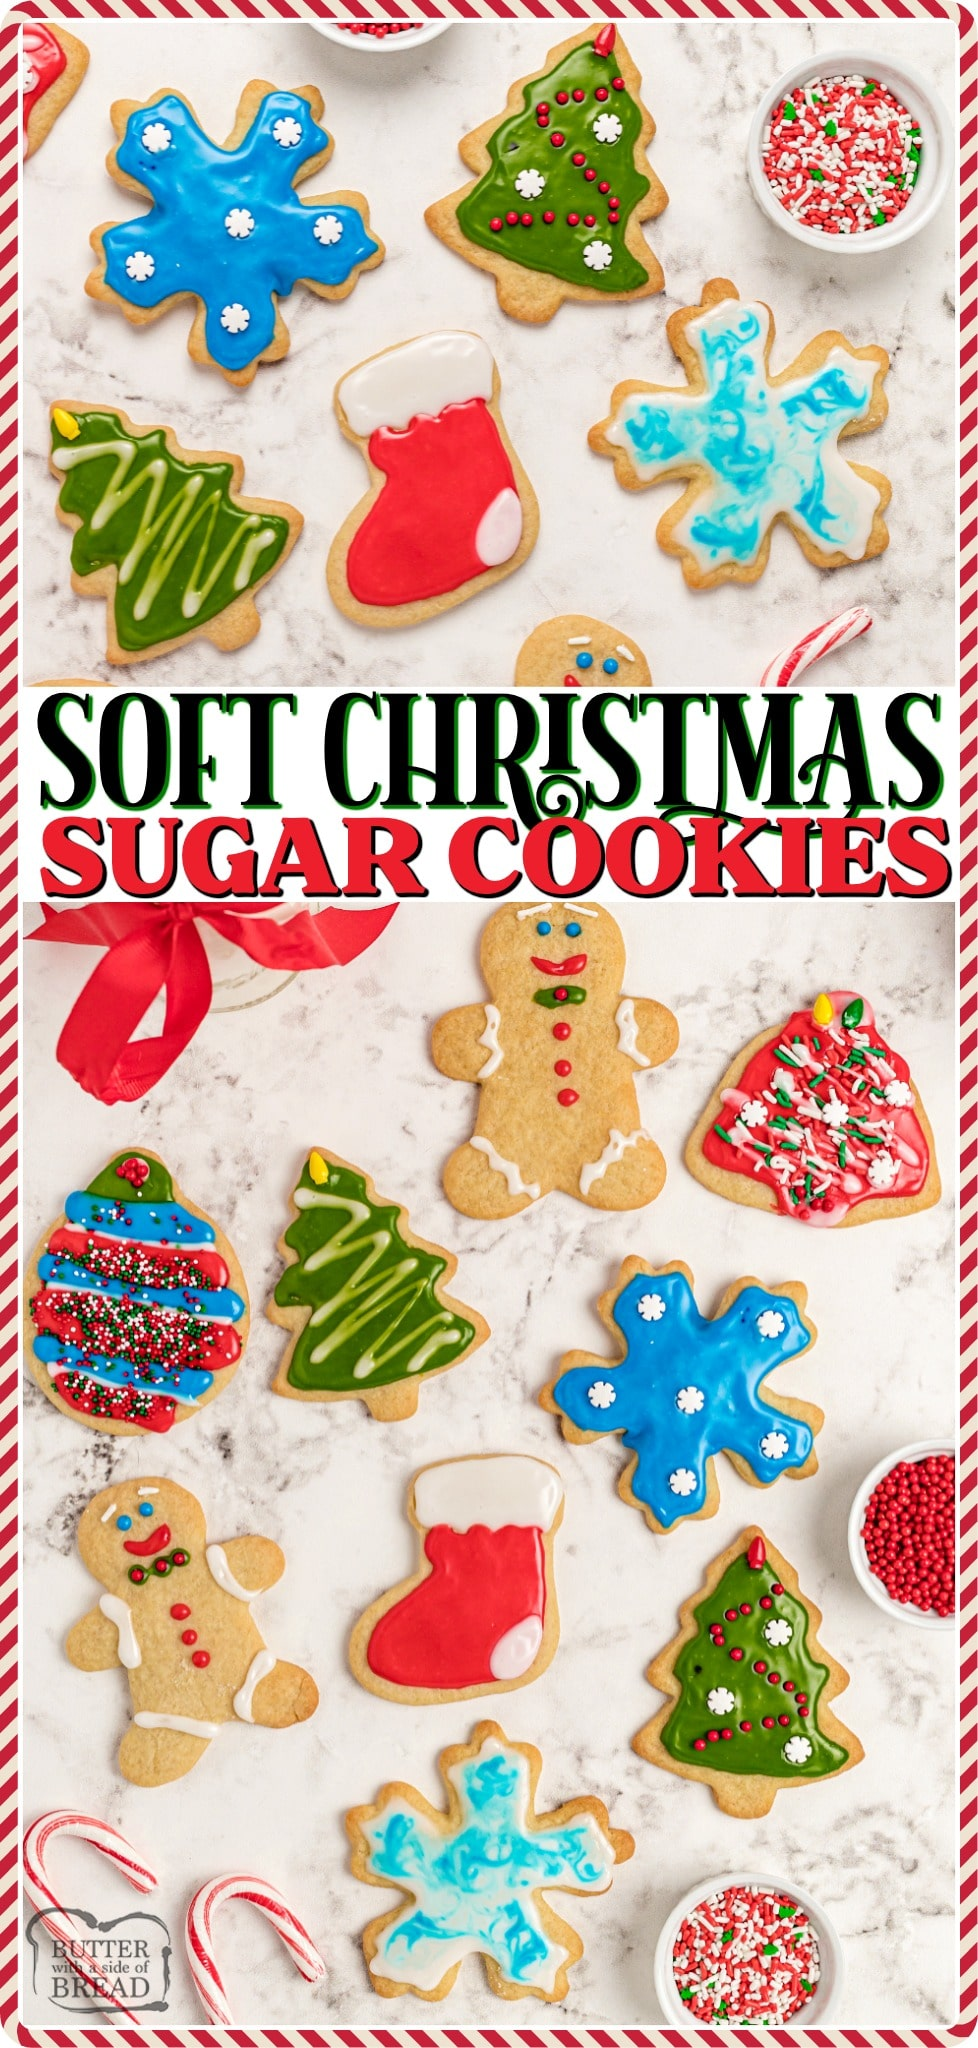 Soft Christmas Sugar Cookies made with classic ingredients & frosted with a simple Royal icing. Perfect holiday Sugar Cookie recipe for festive Christmas cut out cookies!